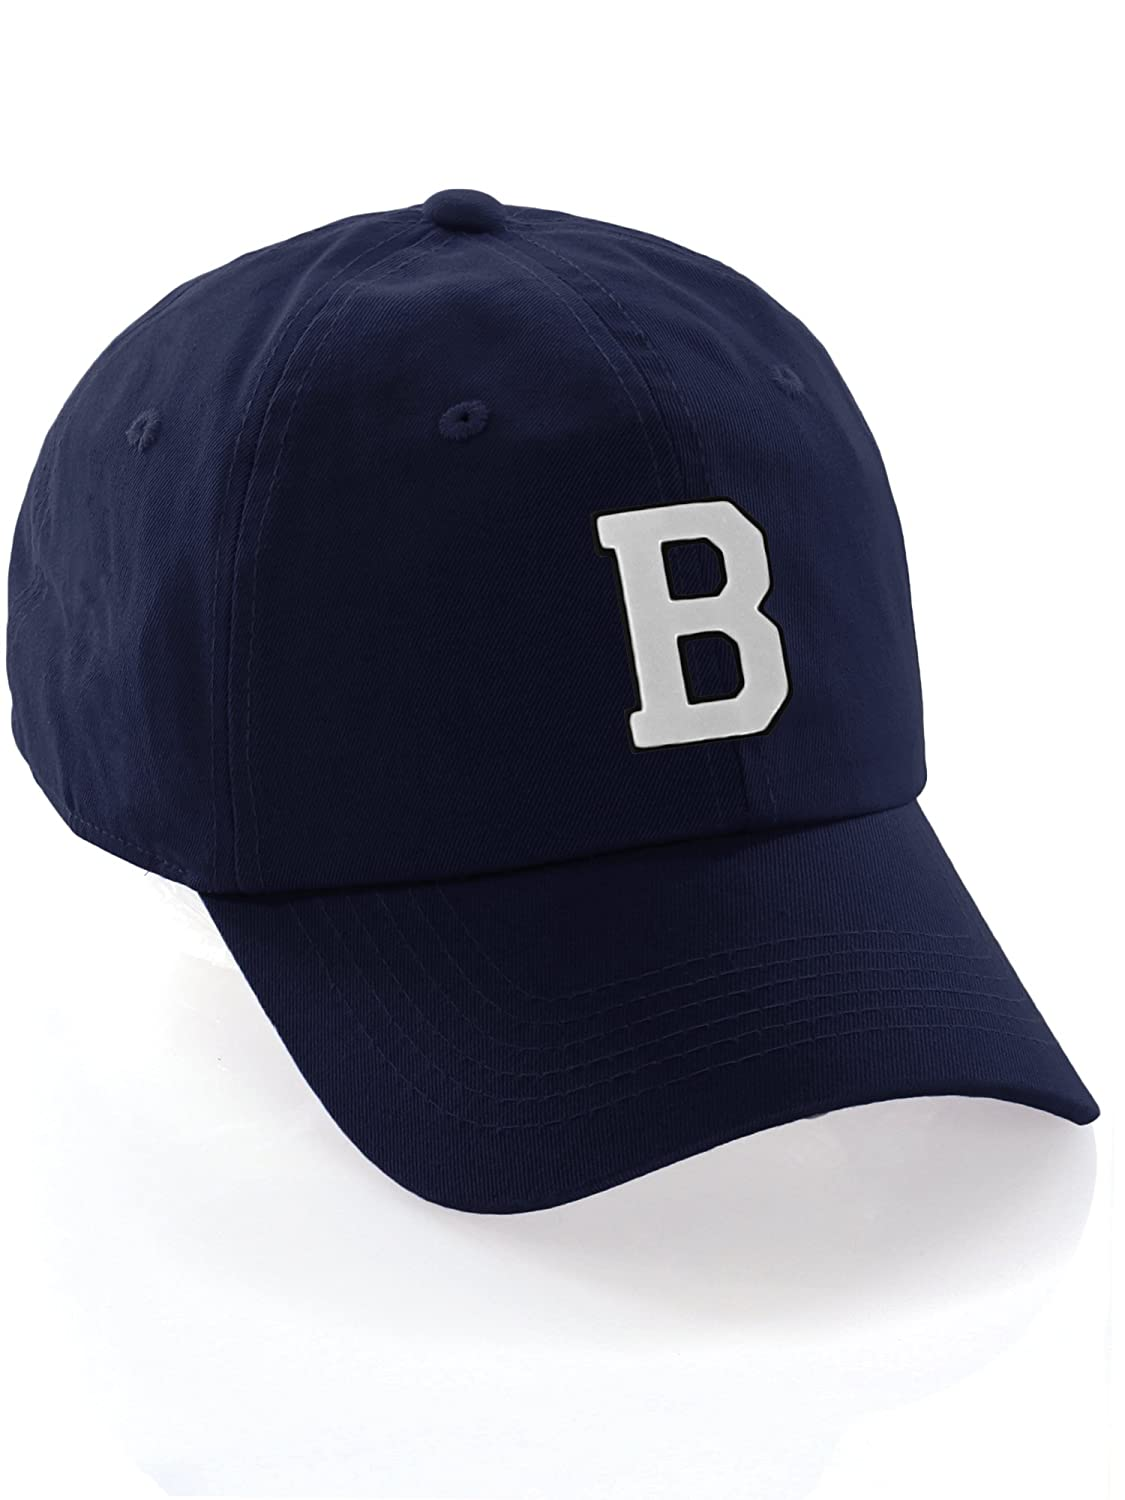 7cfdde104c506 Custom Dad Hat A-Z Initial Raised Letters Classic Baseball Cap - Navy Hat  with Black White Letter